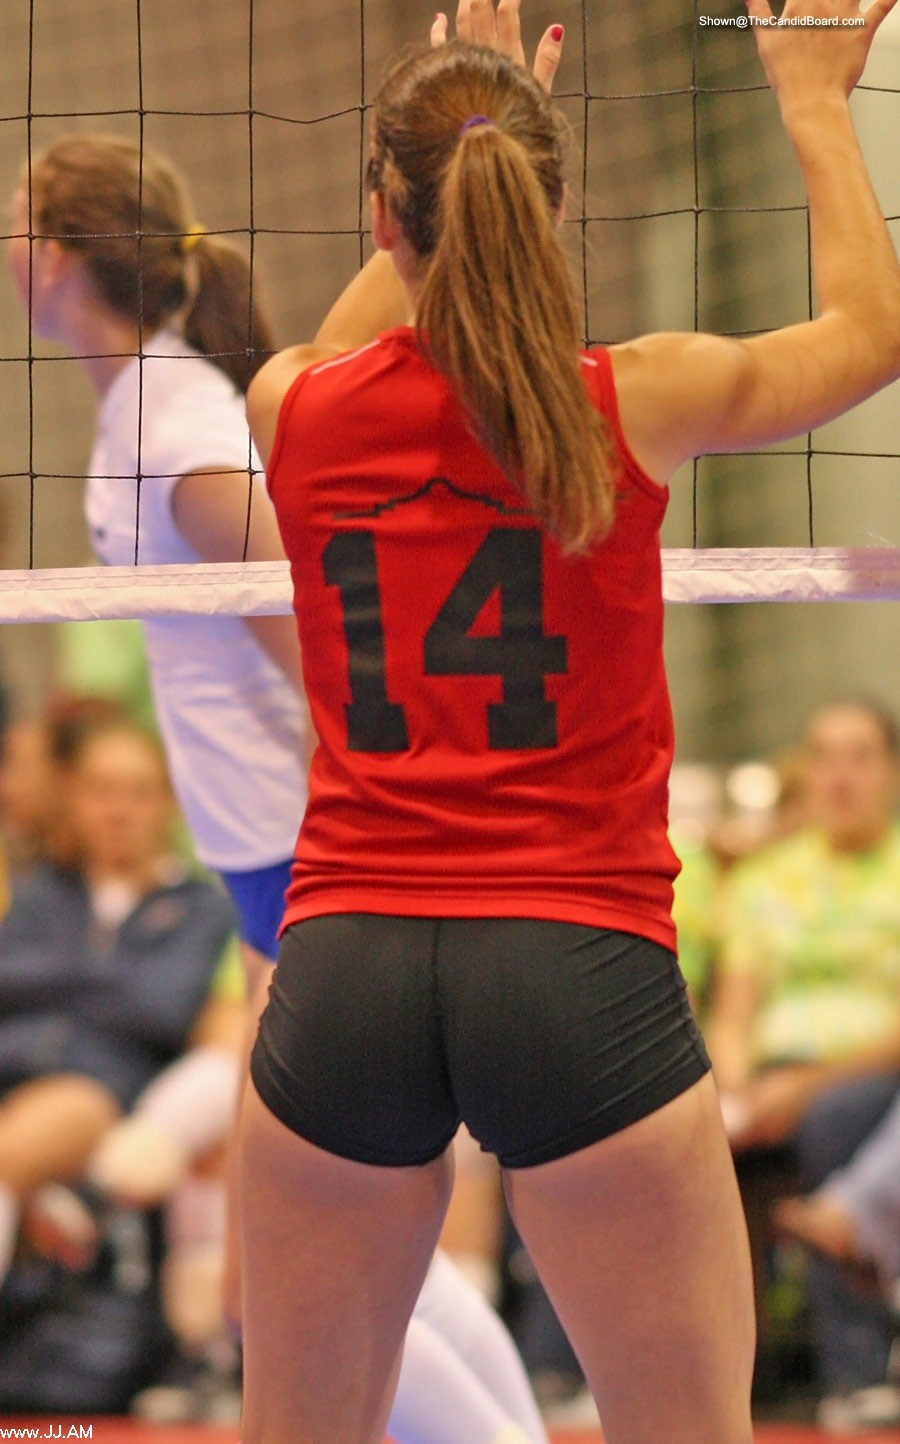 Sexy volleyball spandex shorts